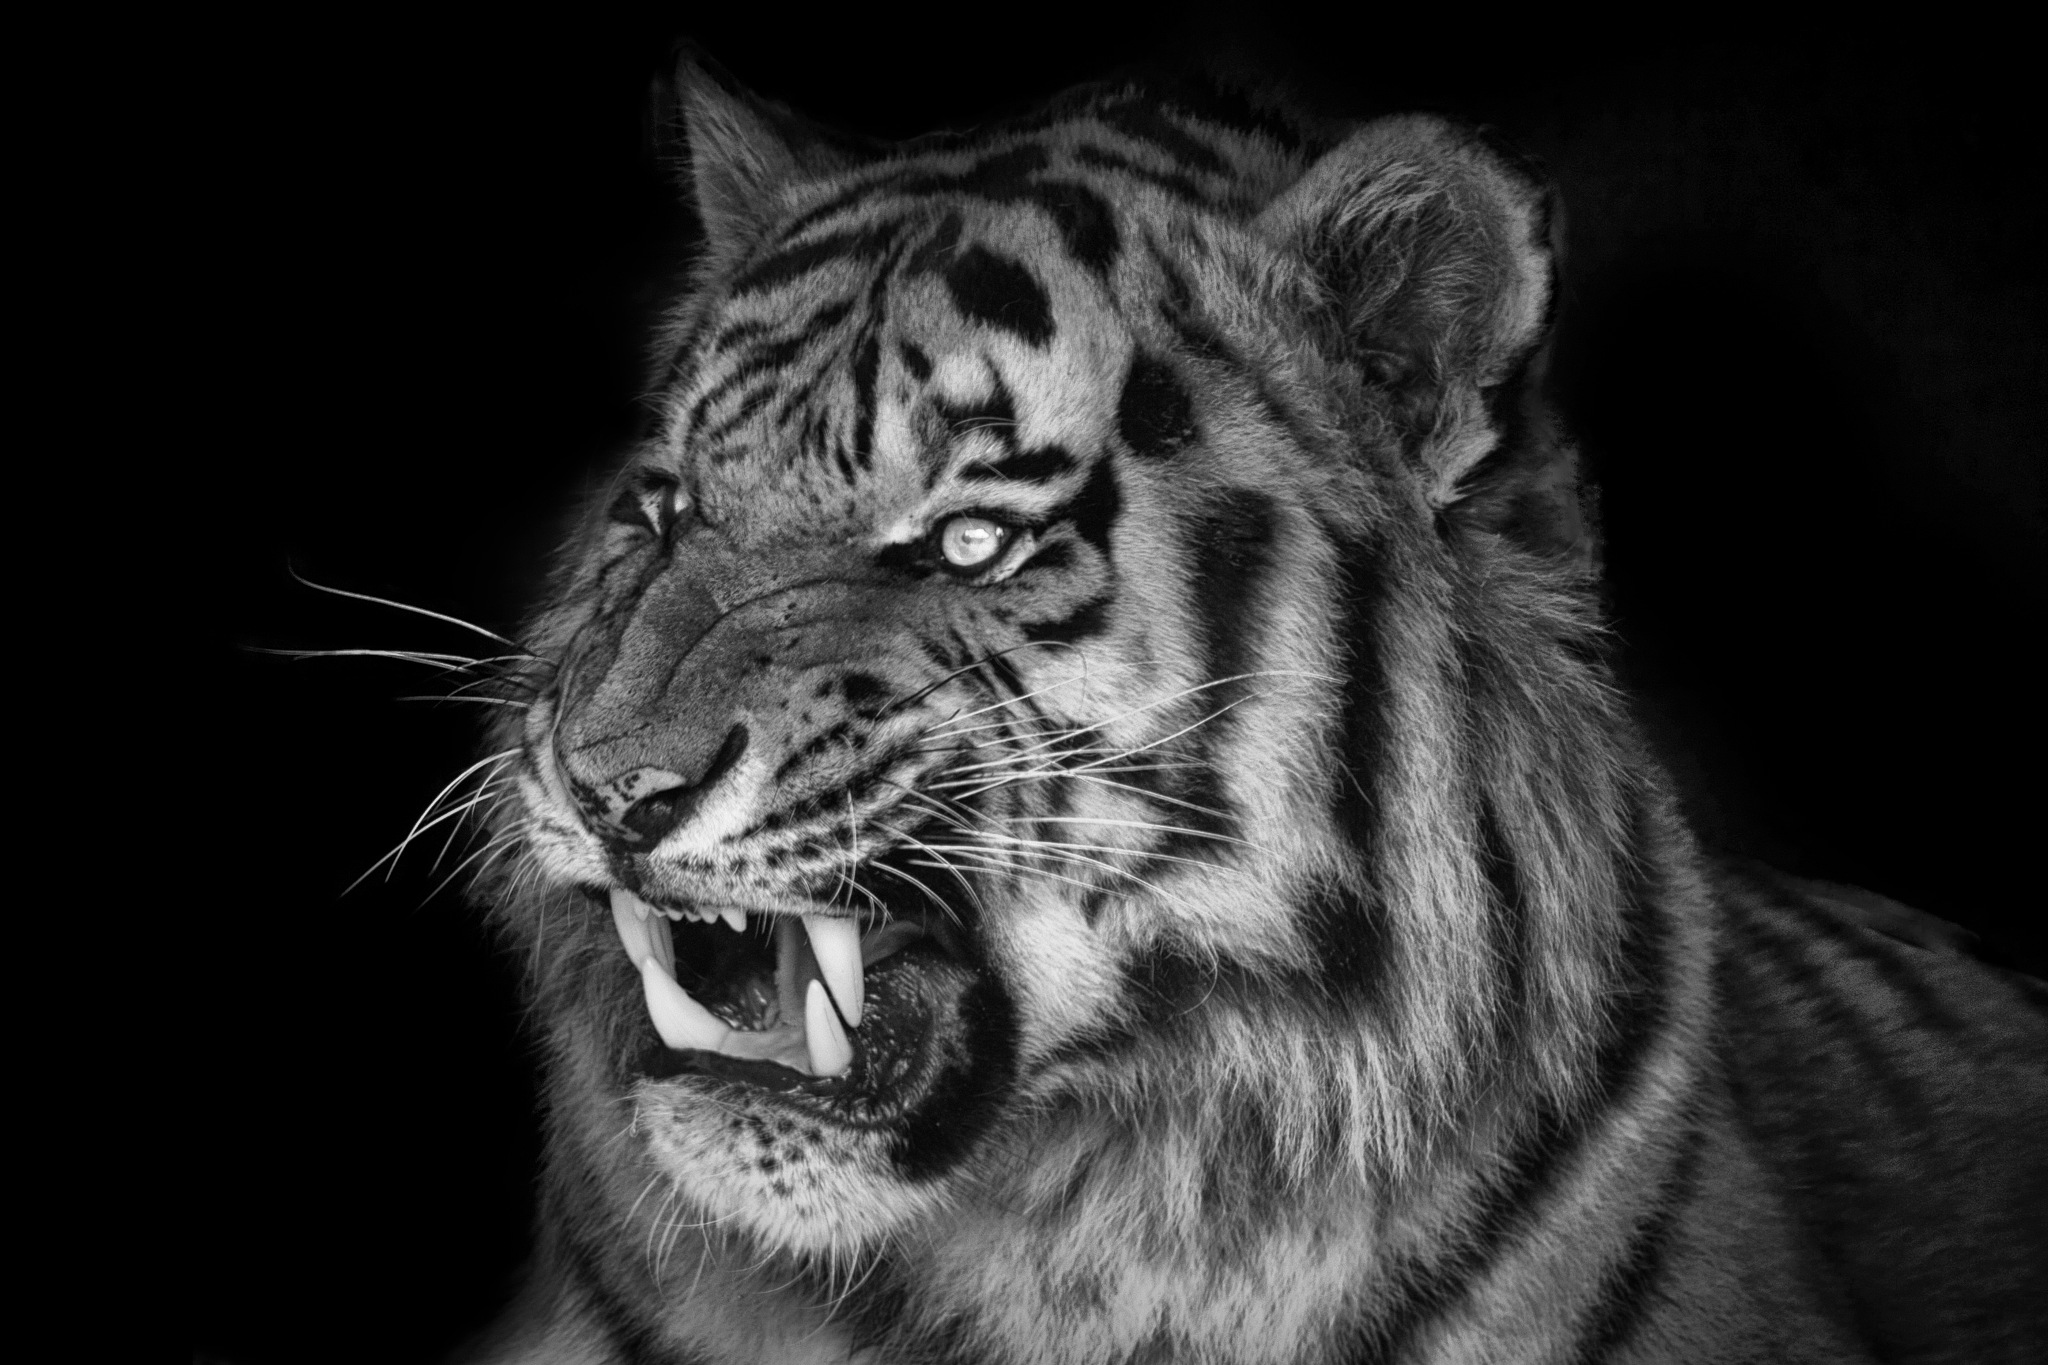 angry Tiger by Christoph Reiter